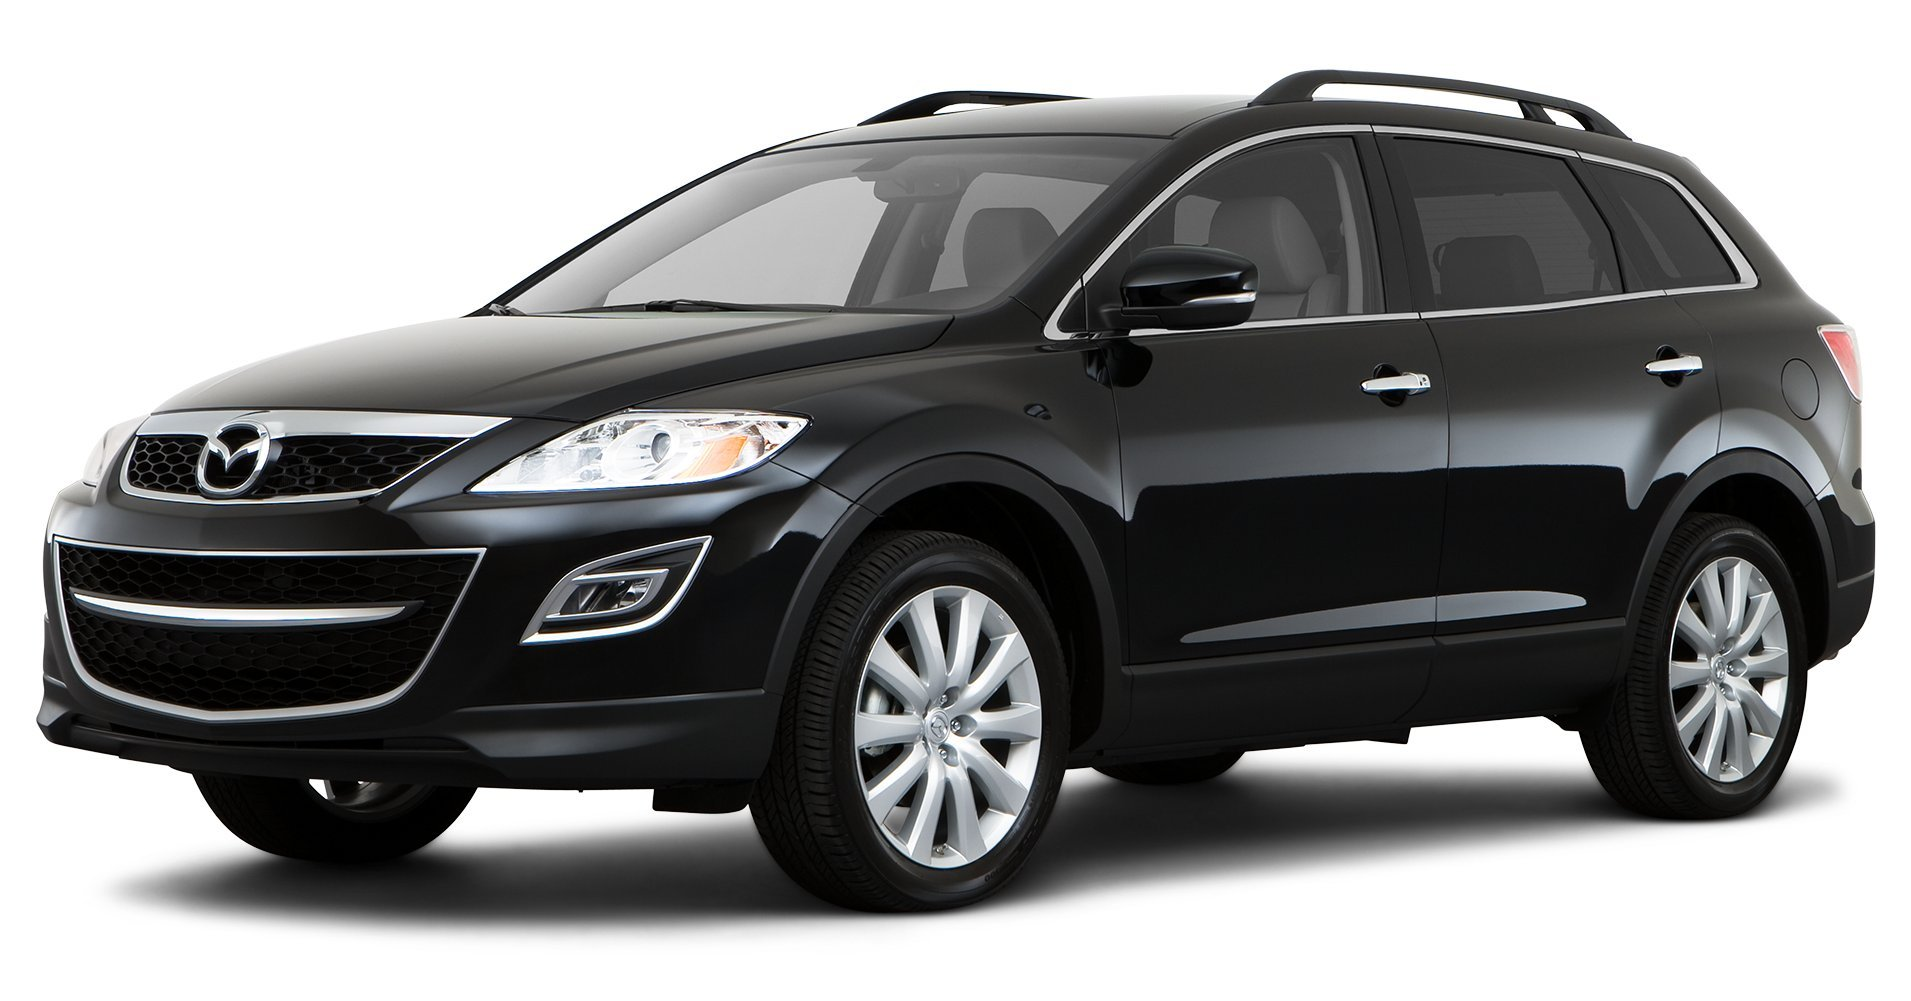 Amazon.com: 2010 Mazda CX-9 Reviews, Images, And Specs